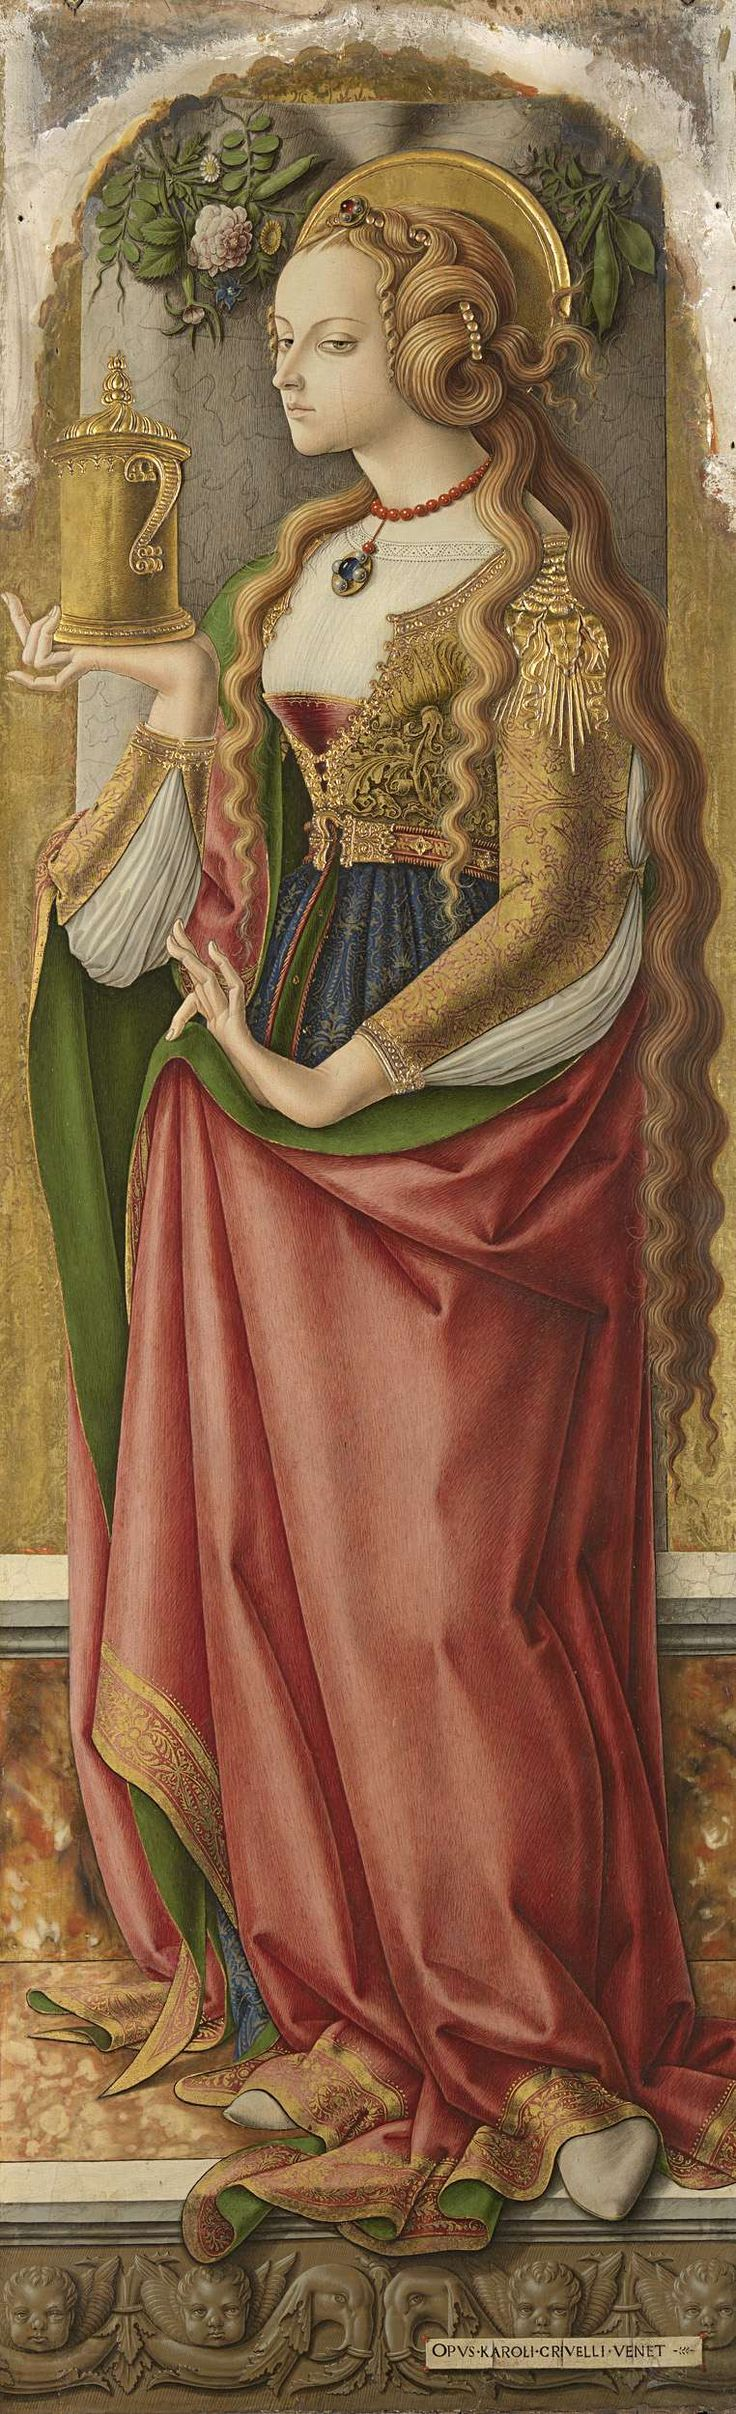 Title(s) Mary Magdalene Description De heilige Maria Magdalena, staande met de zalfpot in de rechterhand. Artist: Carlo Crivelli Dating c. 1480 Measurements h 152 cm × w 49 cm